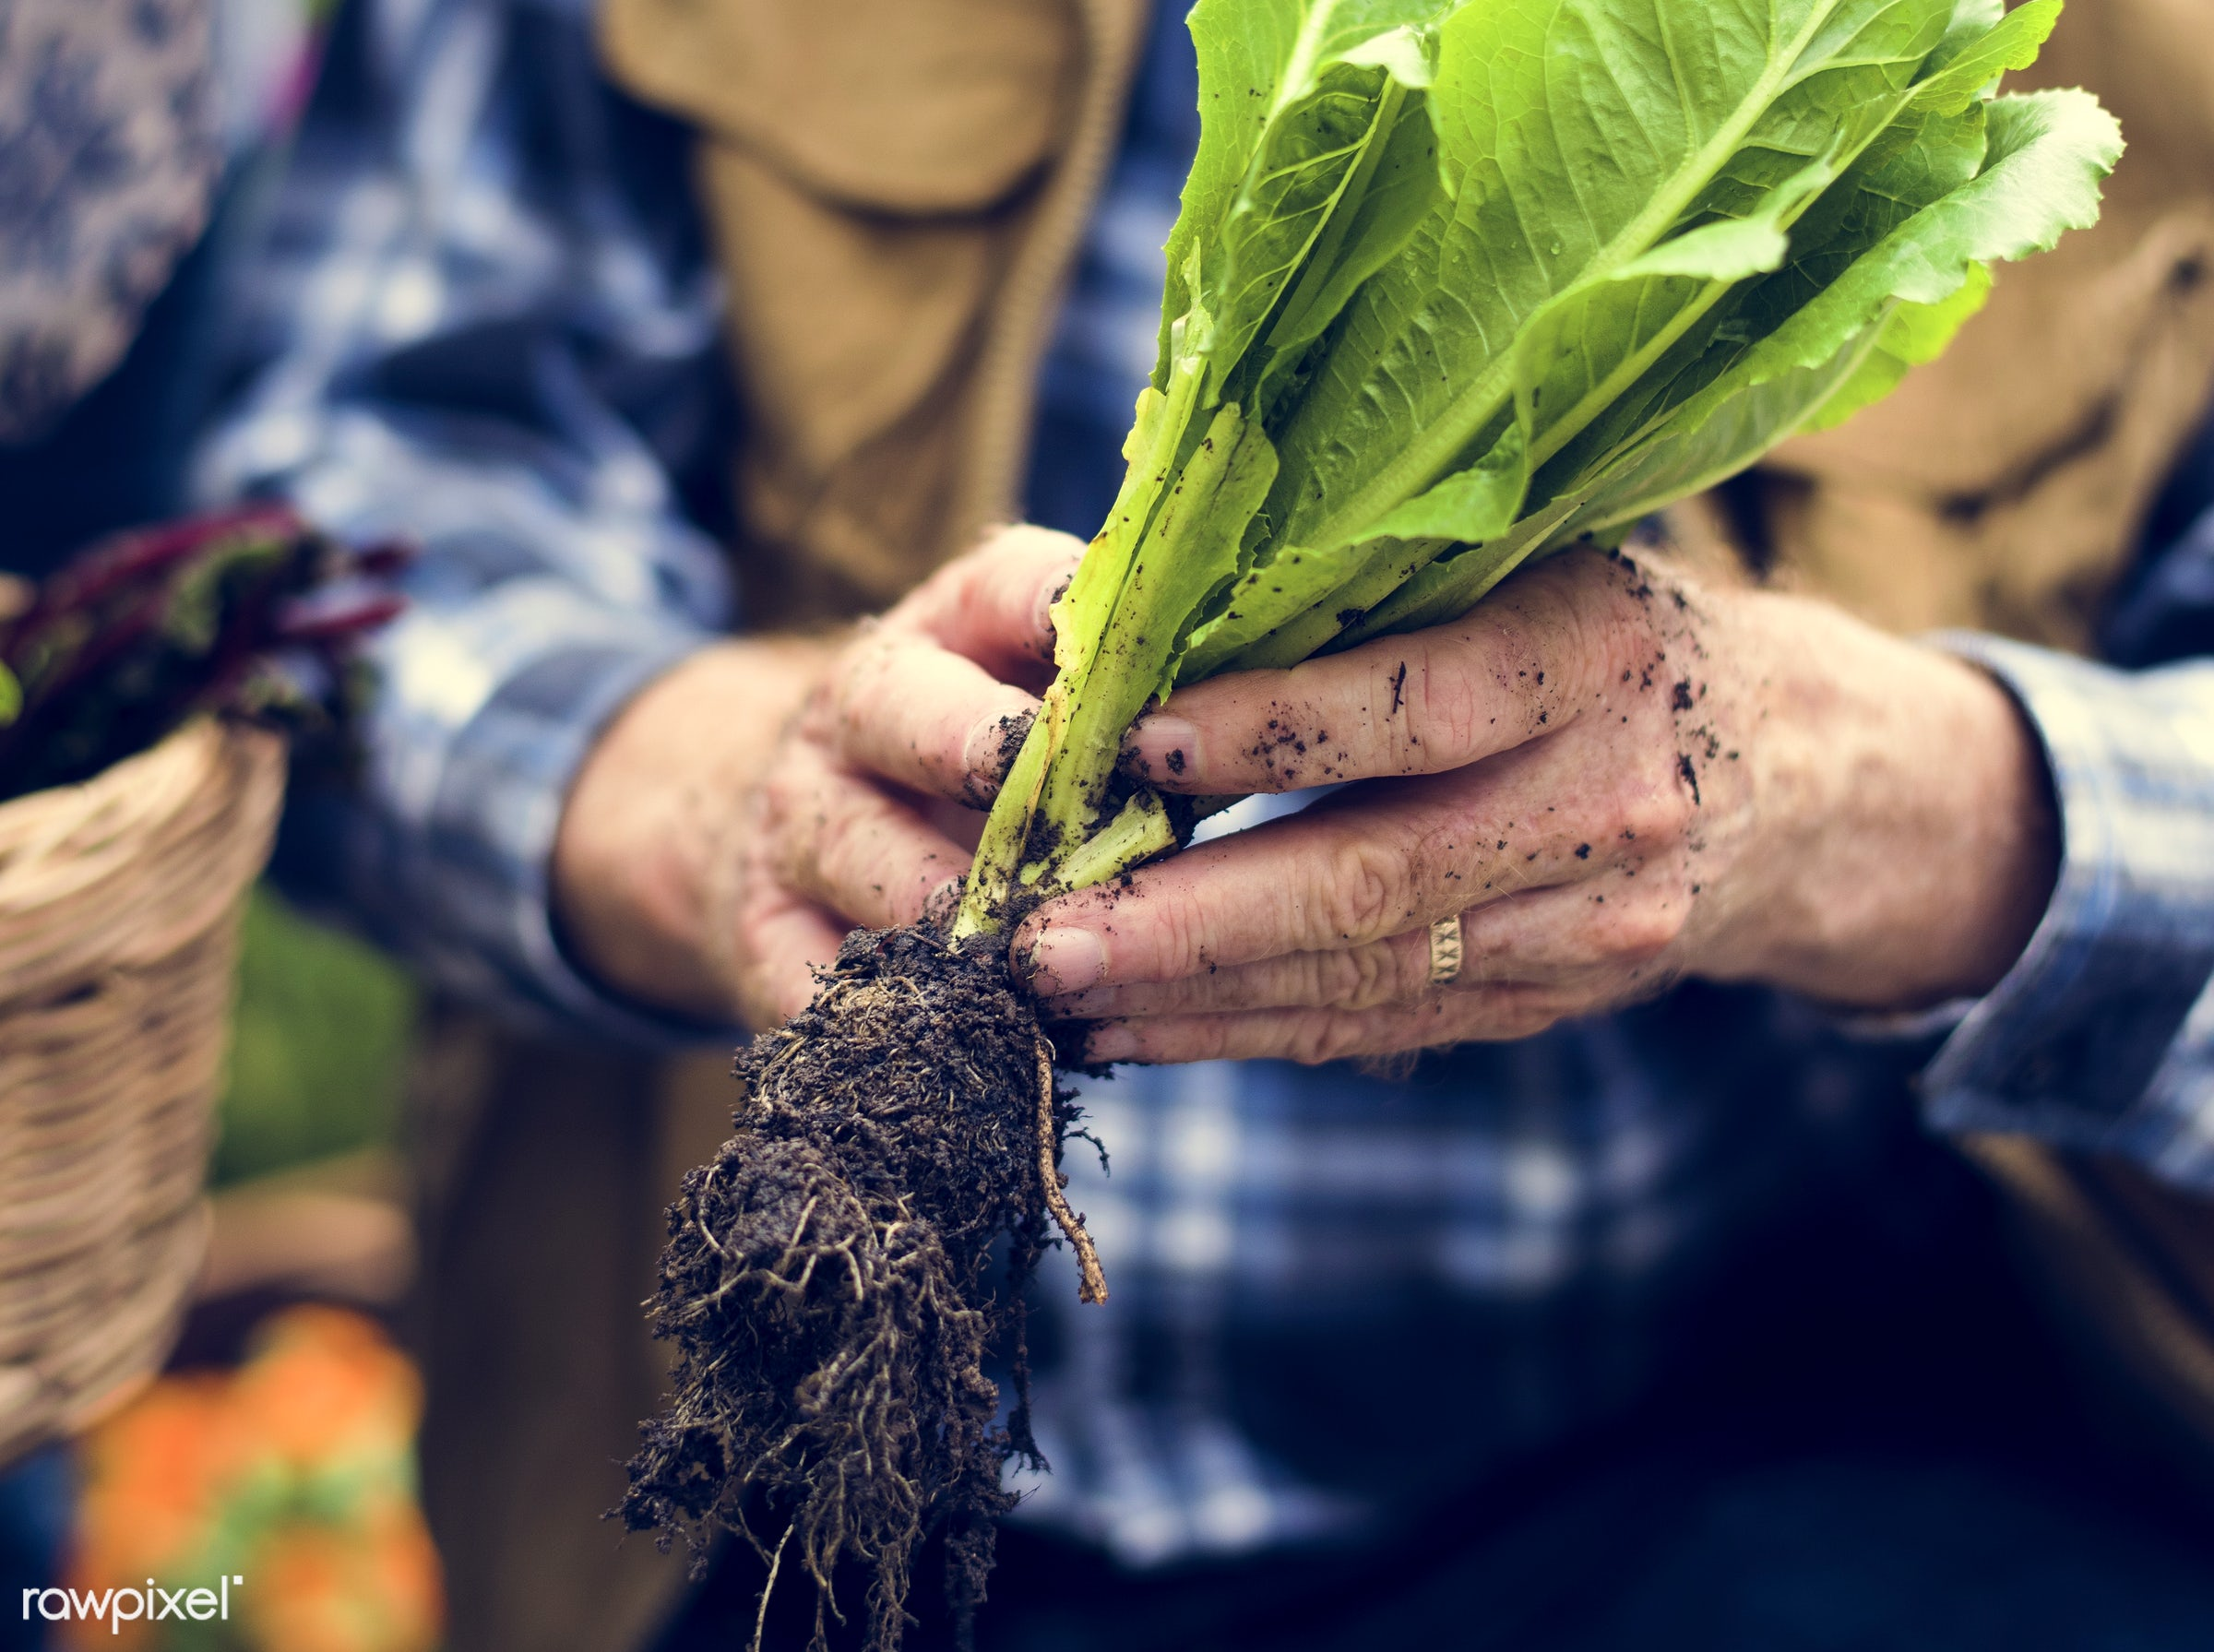 salad, person, holding, root, people, nature, woman, lifestyle, shirt, ring, health, nutrition, food, vegetable, soil, raw,...